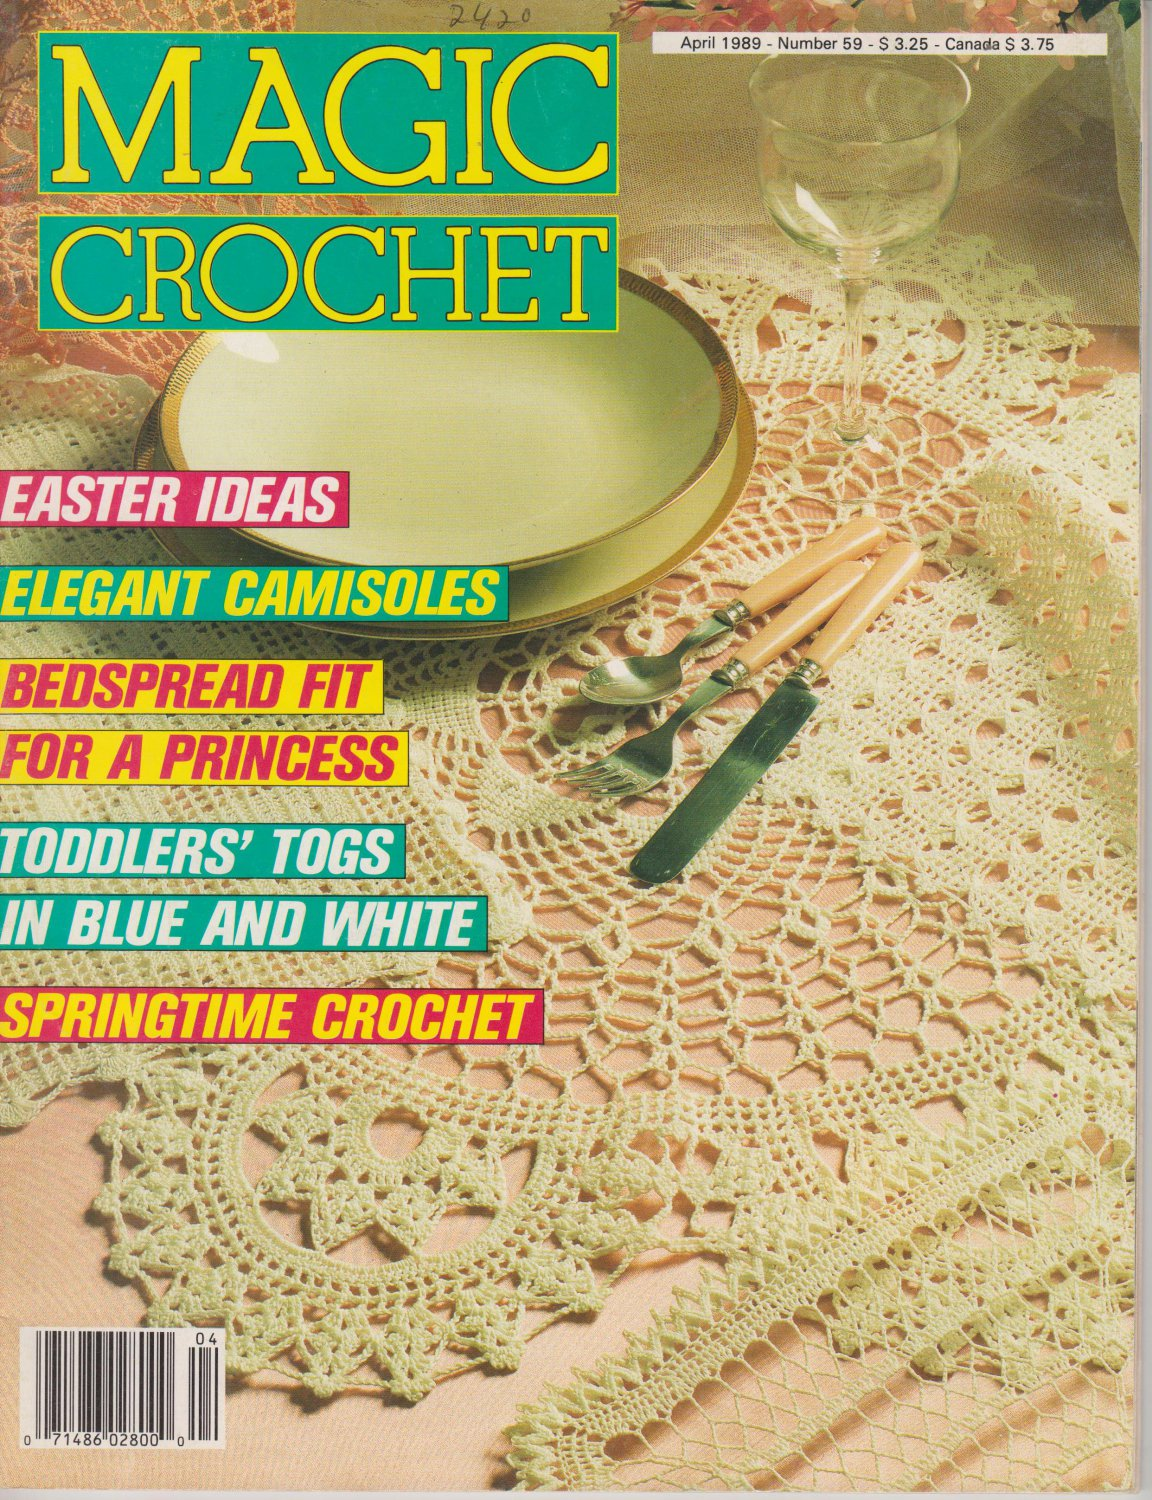 Magic Crochet Magazine Issue April 1989 Number 59